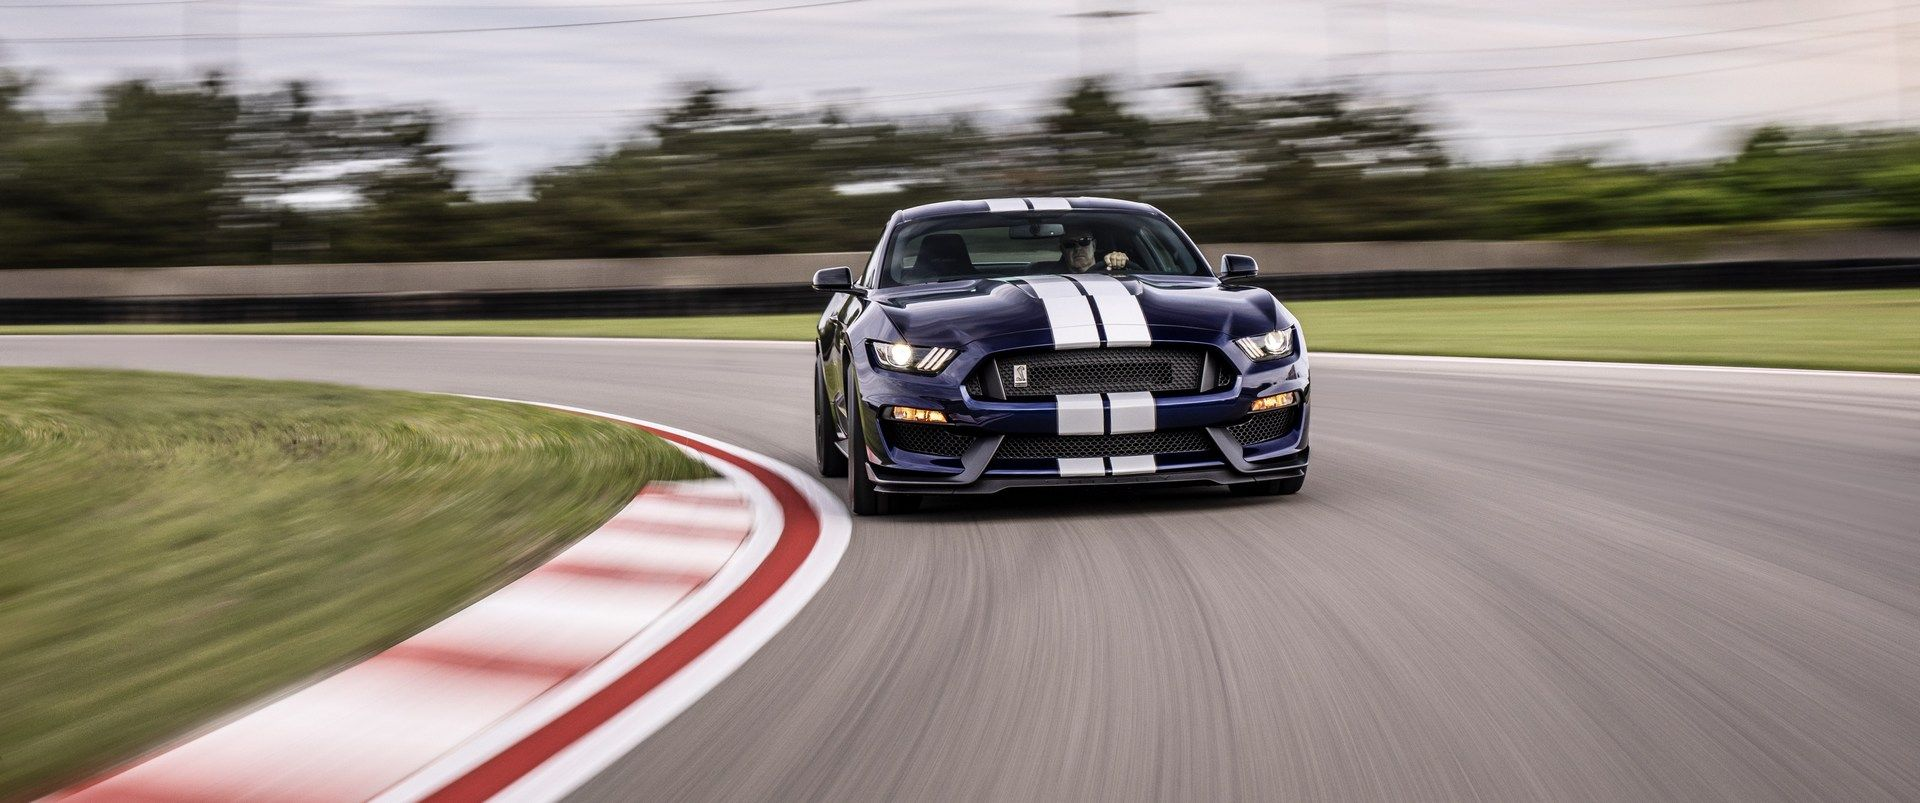 2019 Ford Mustang Configurator Goes Live, EcoBoost Fastback Priced At $25,845 - autoevolution